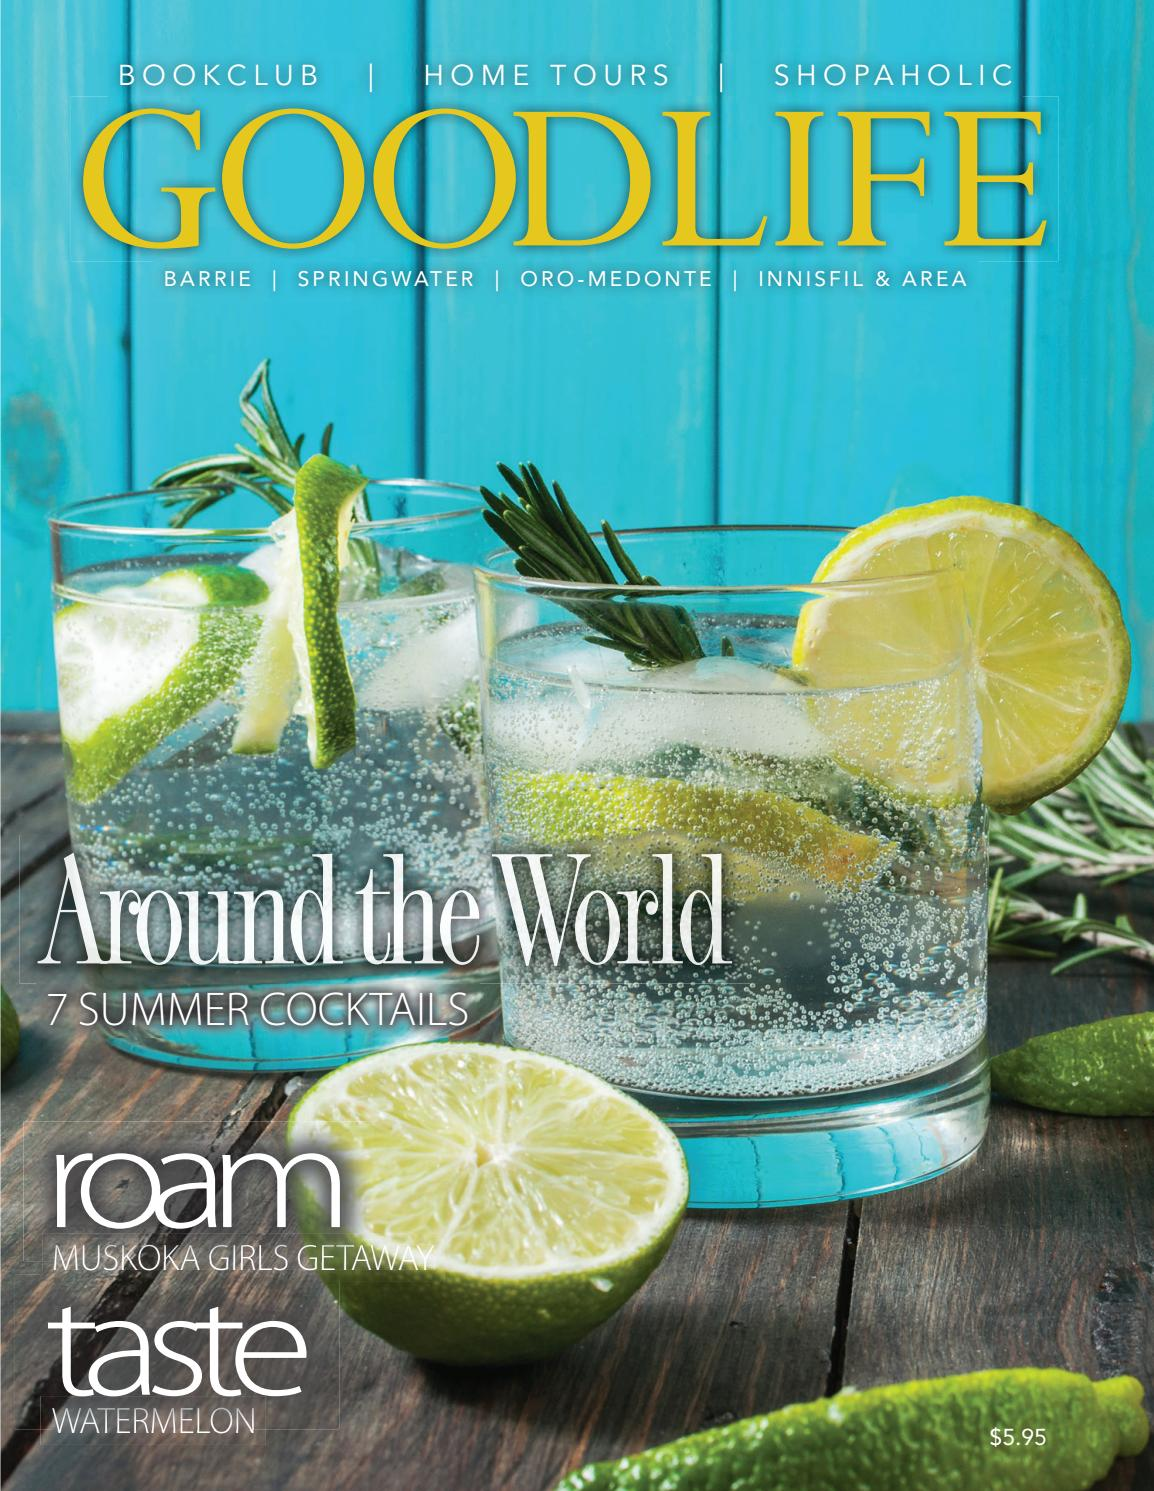 bd4581cc10e Goodlife Barrie July-August 2018 by GoodLife Magazine - Simcoe ...